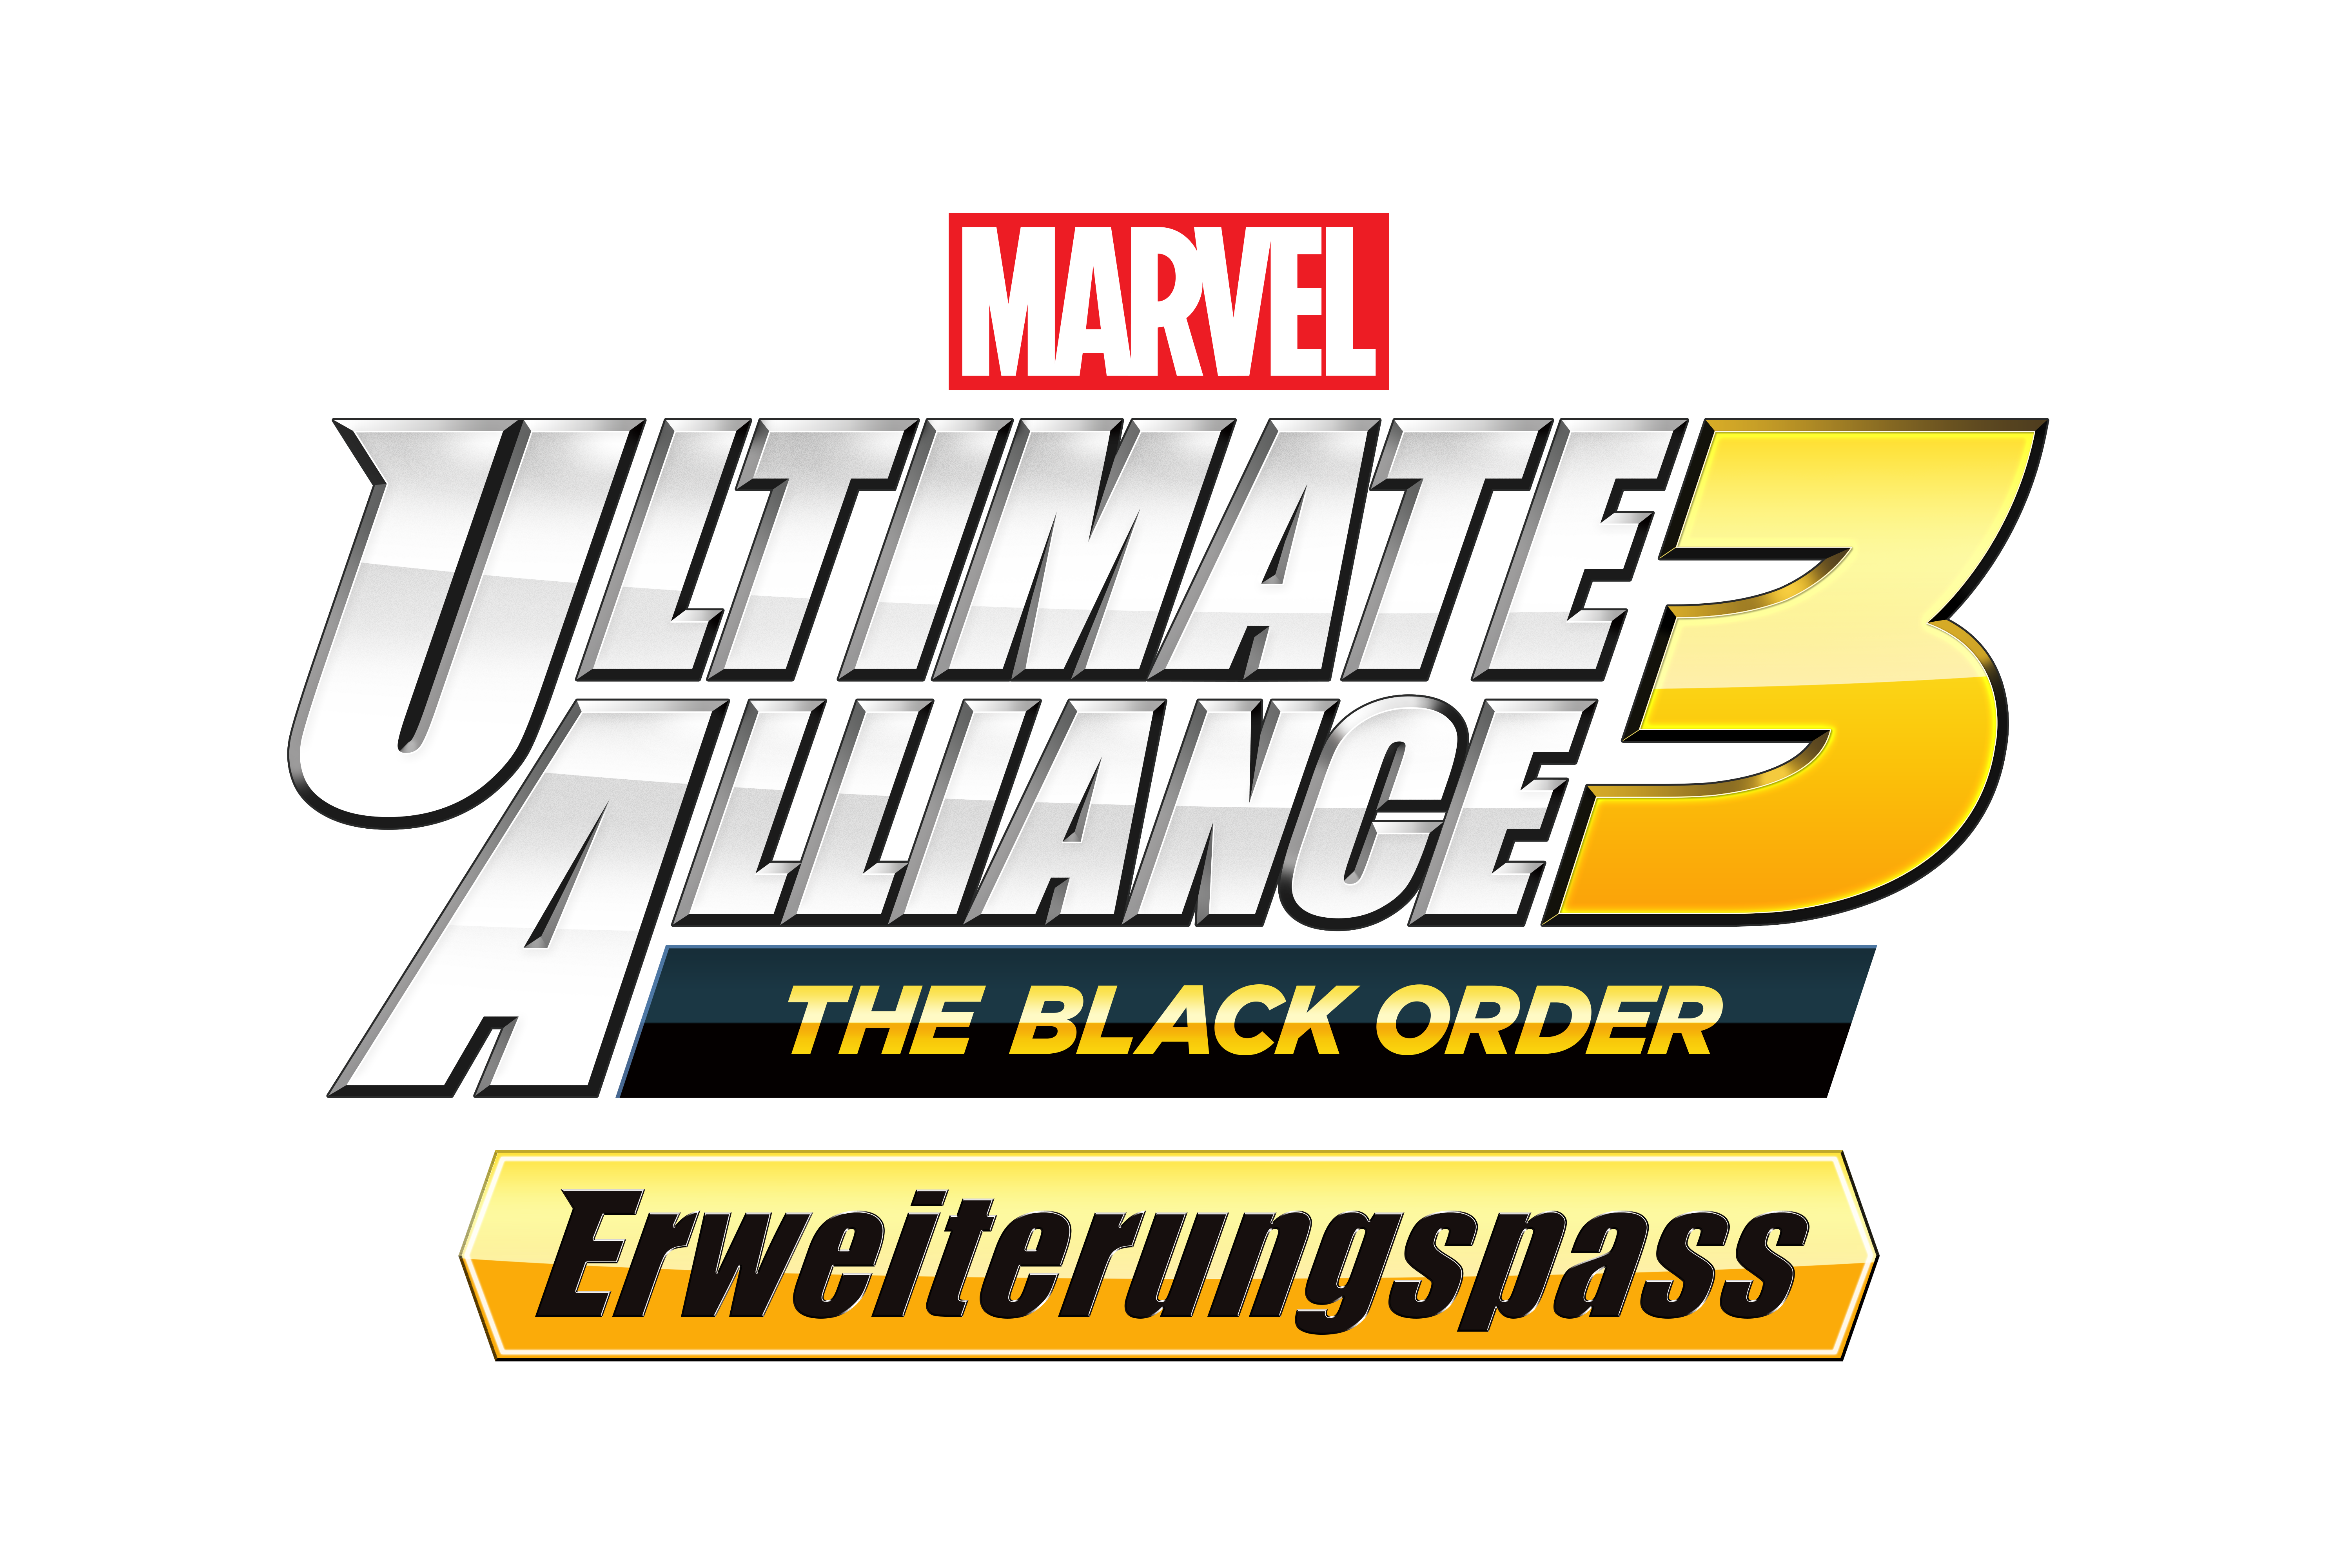 CI_NSwitch_MarvelUltimateAlliance3_DLC_DE.png